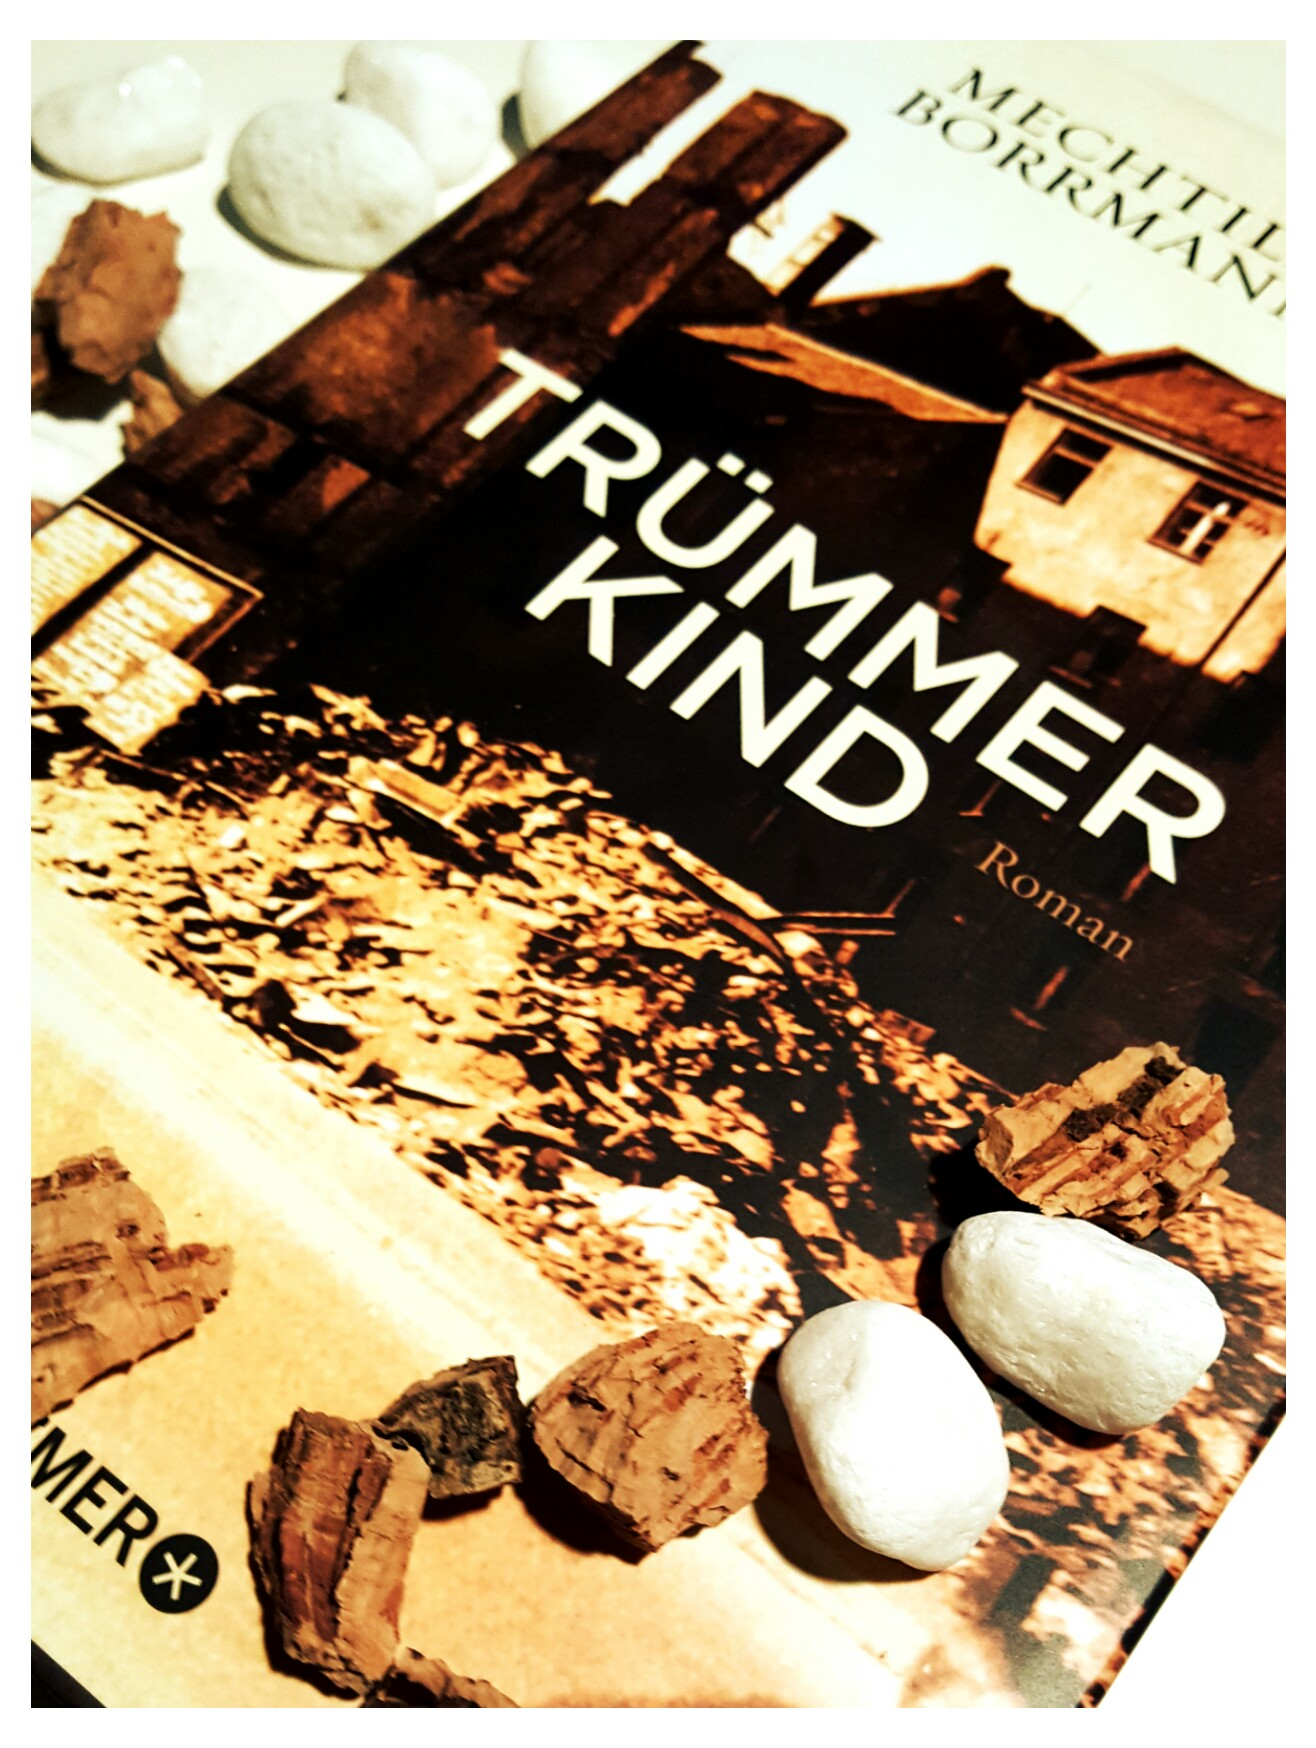 [Rezension] Mechtild Borrmann – Trümmerkind